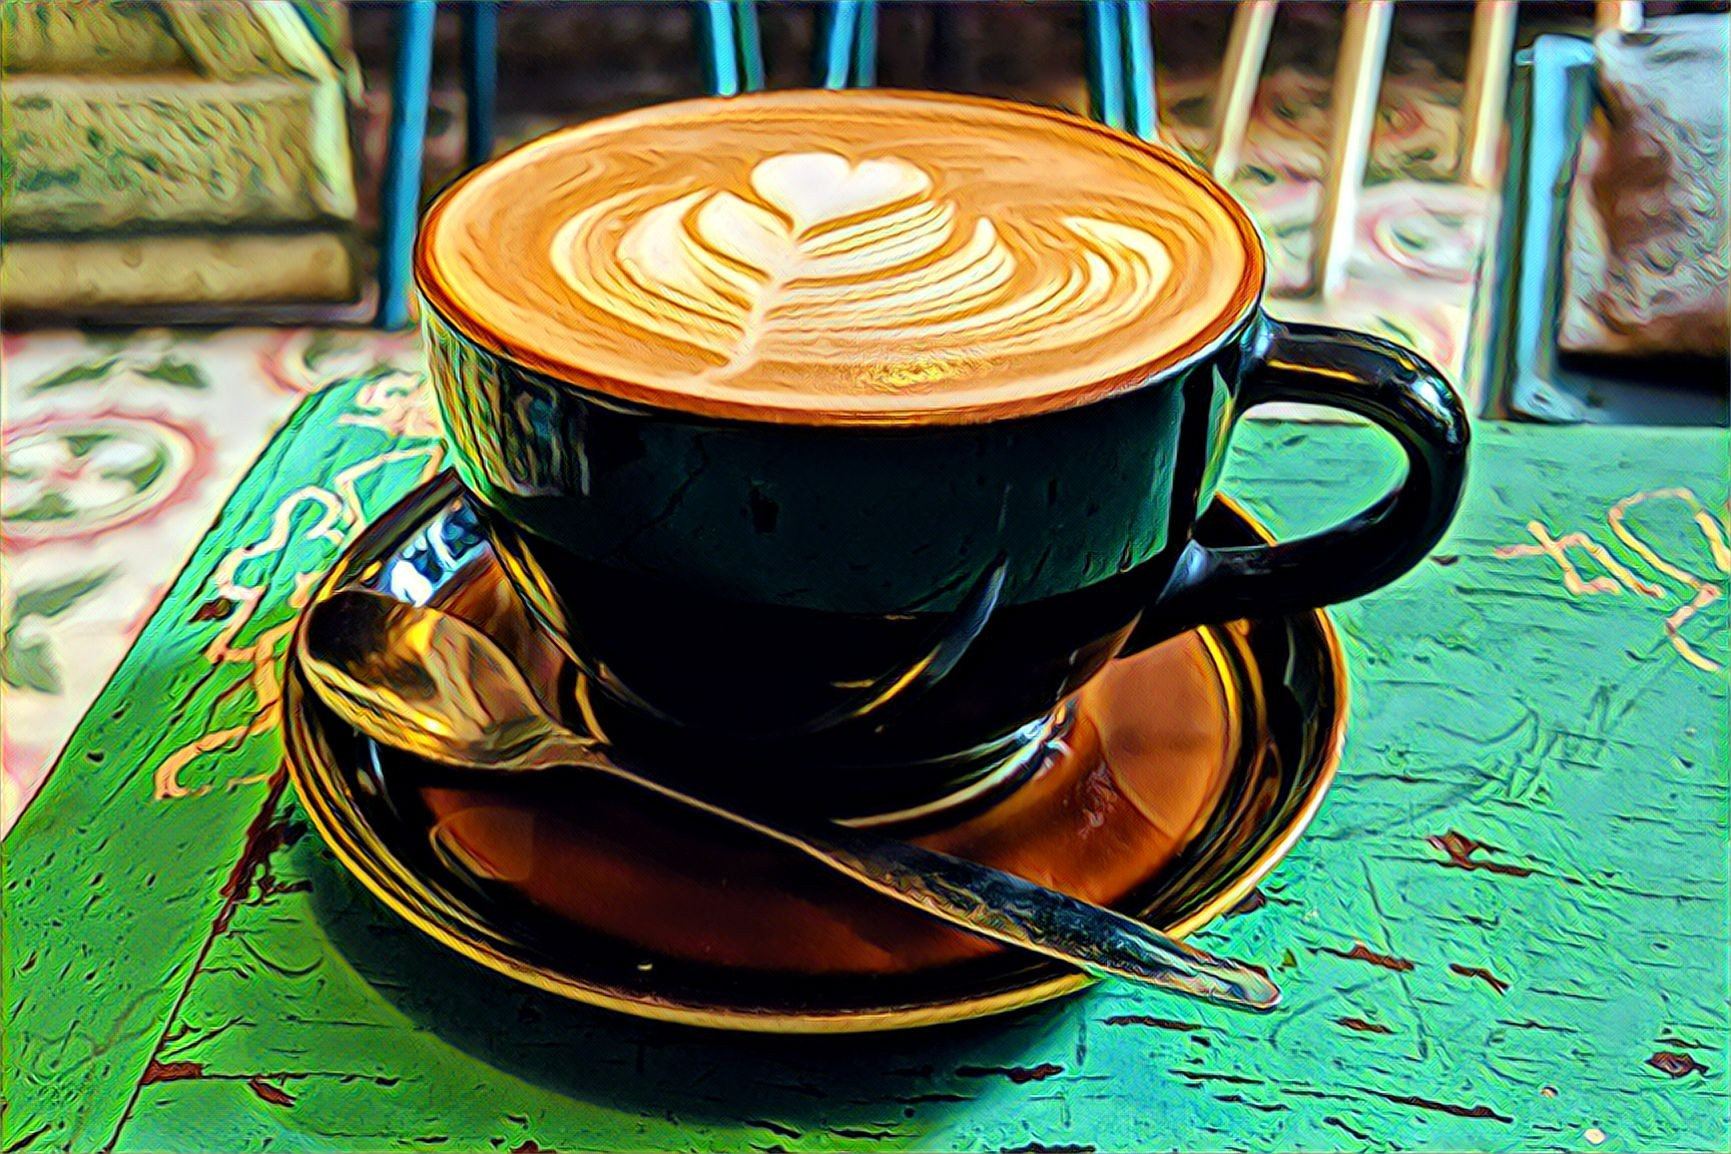 The Complete Guide To Cafes In Dalat, Vietnam